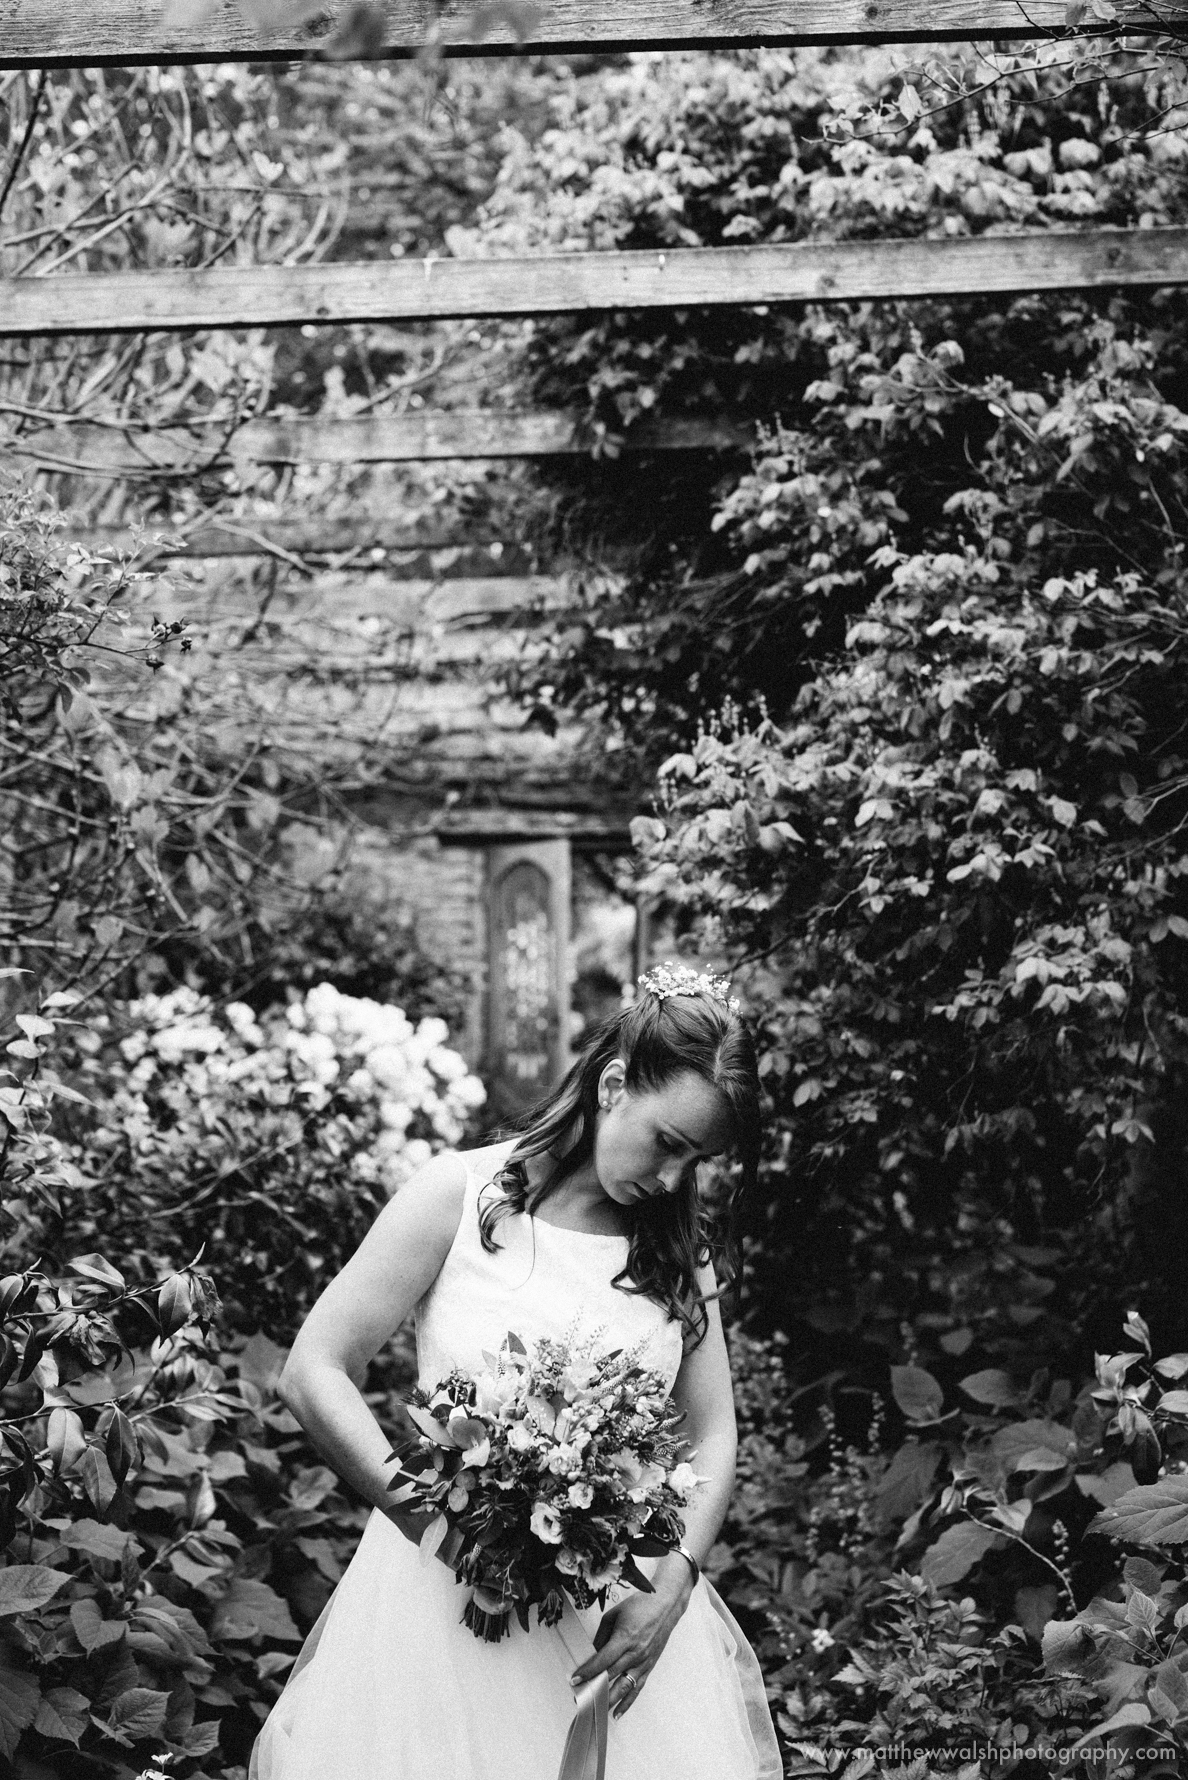 The bride looking gorgeous in the beautiful gardens of the venue